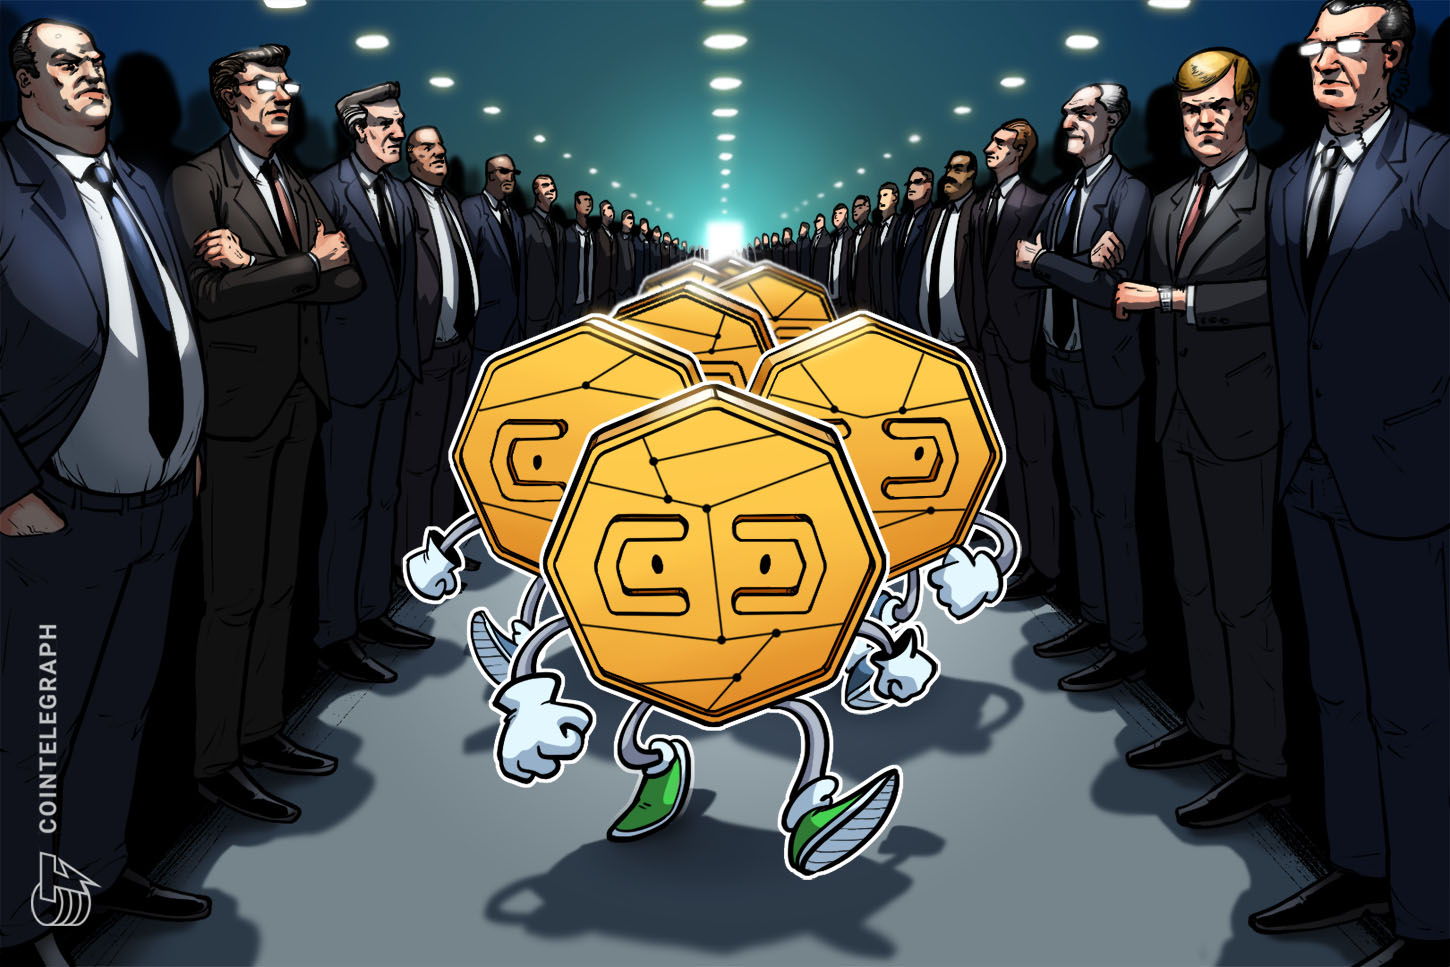 FBI to reform virtual currency practices following DoJ recommendations